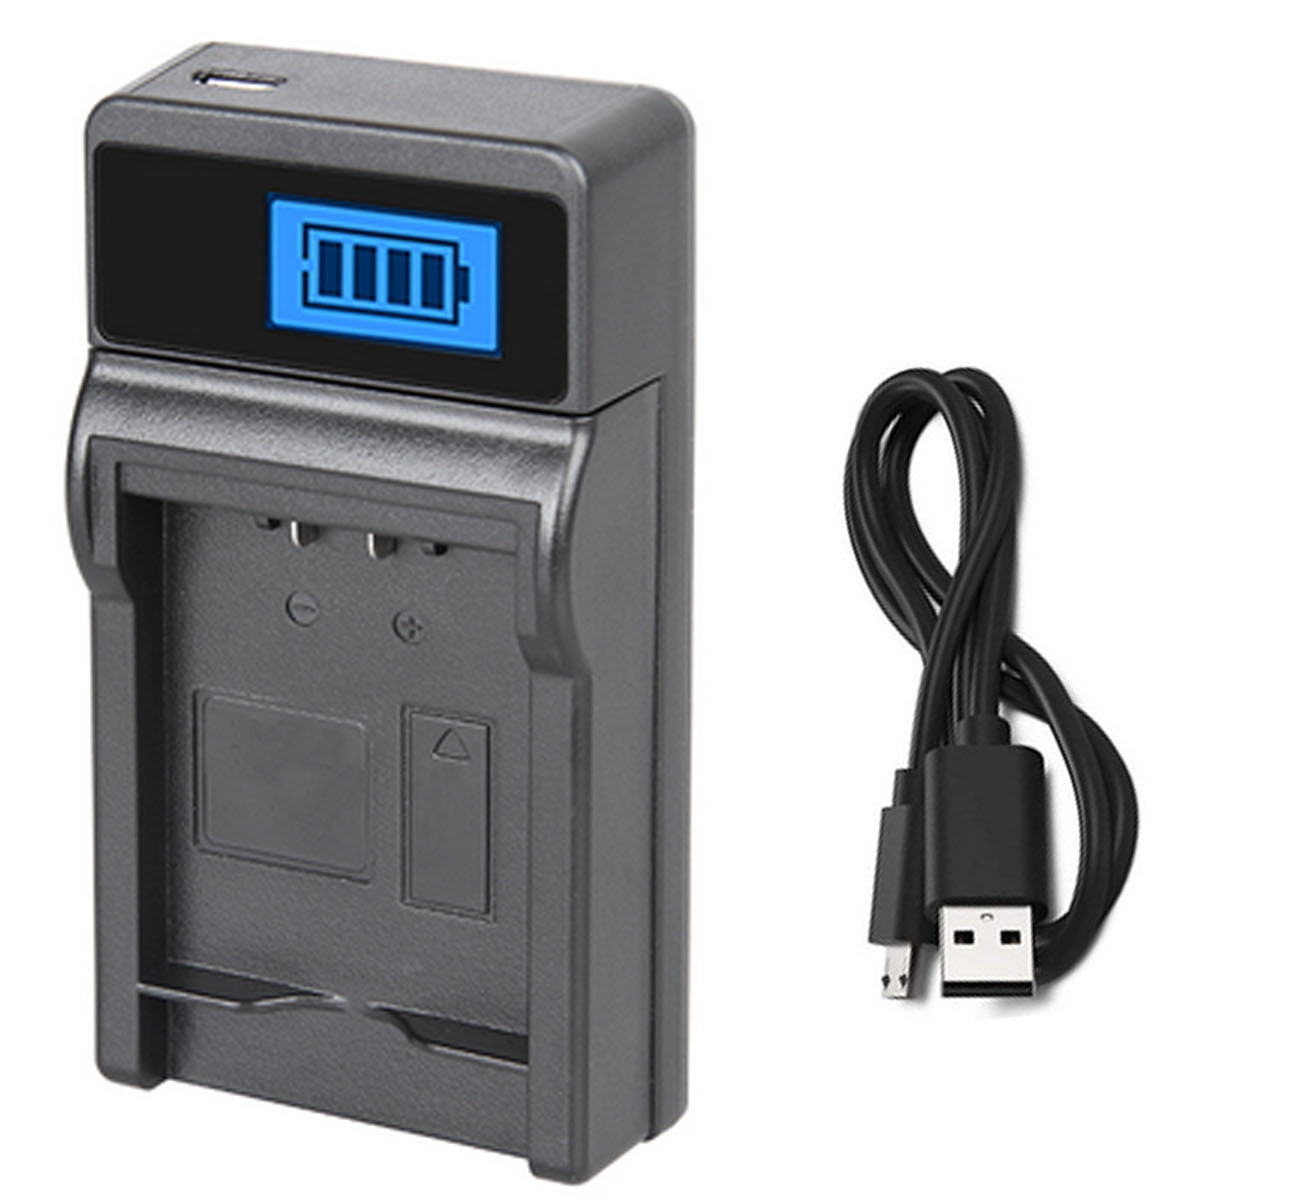 PV-GS83 PV-GS80 PV-GS85 Camcorder LCD Quick Battery Charger for Panasonic PV-GS70